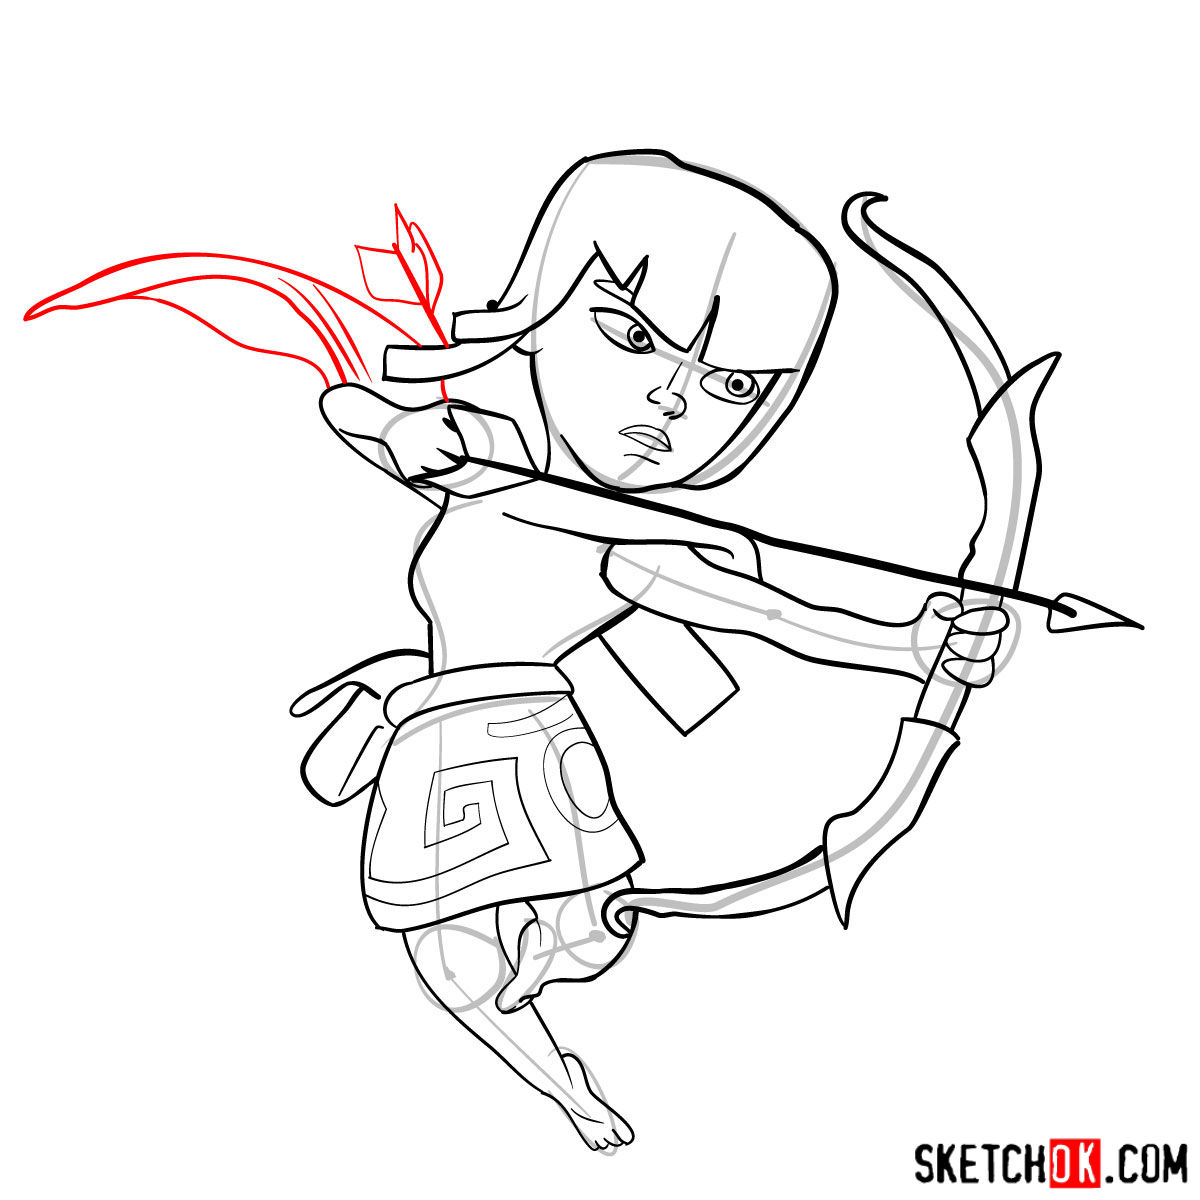 How to draw Archer from Clash of Clans - step 11